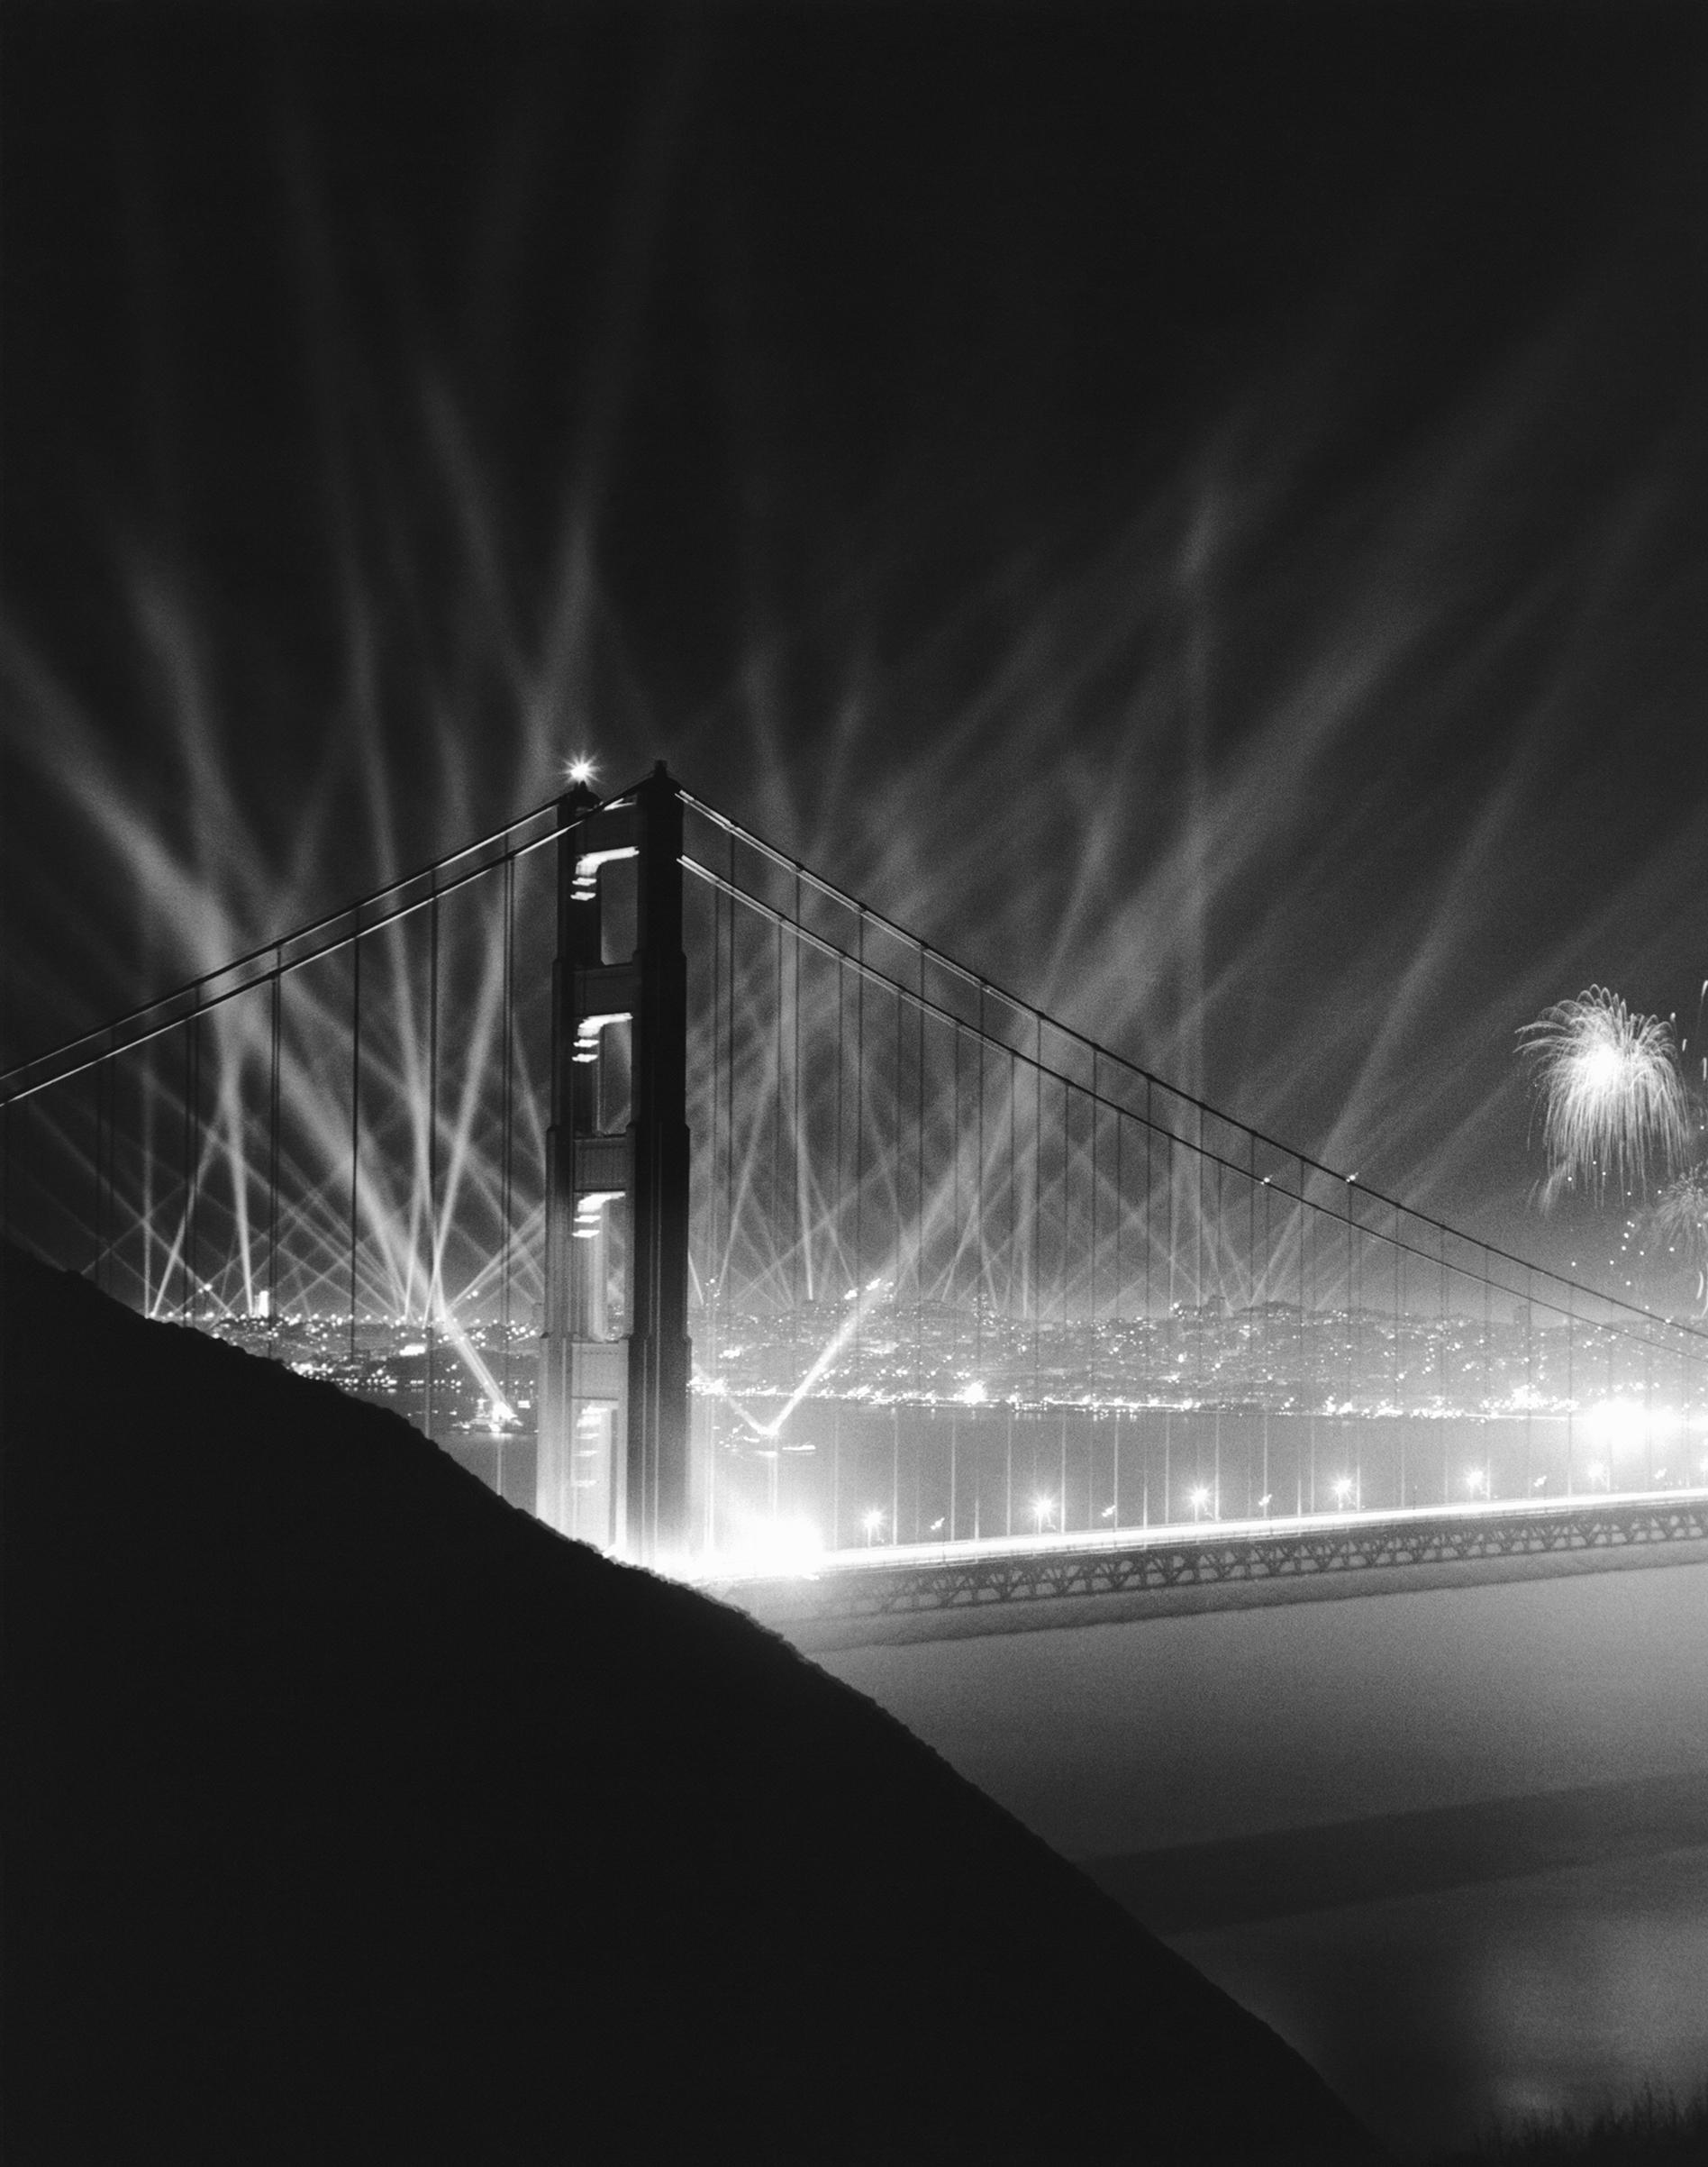 The official grand opening celebration with klieg lights and fireworks of the Golden Gate Bridge, San Francisco, California, May 29, 1937. The opening ceremonies lasted a week.